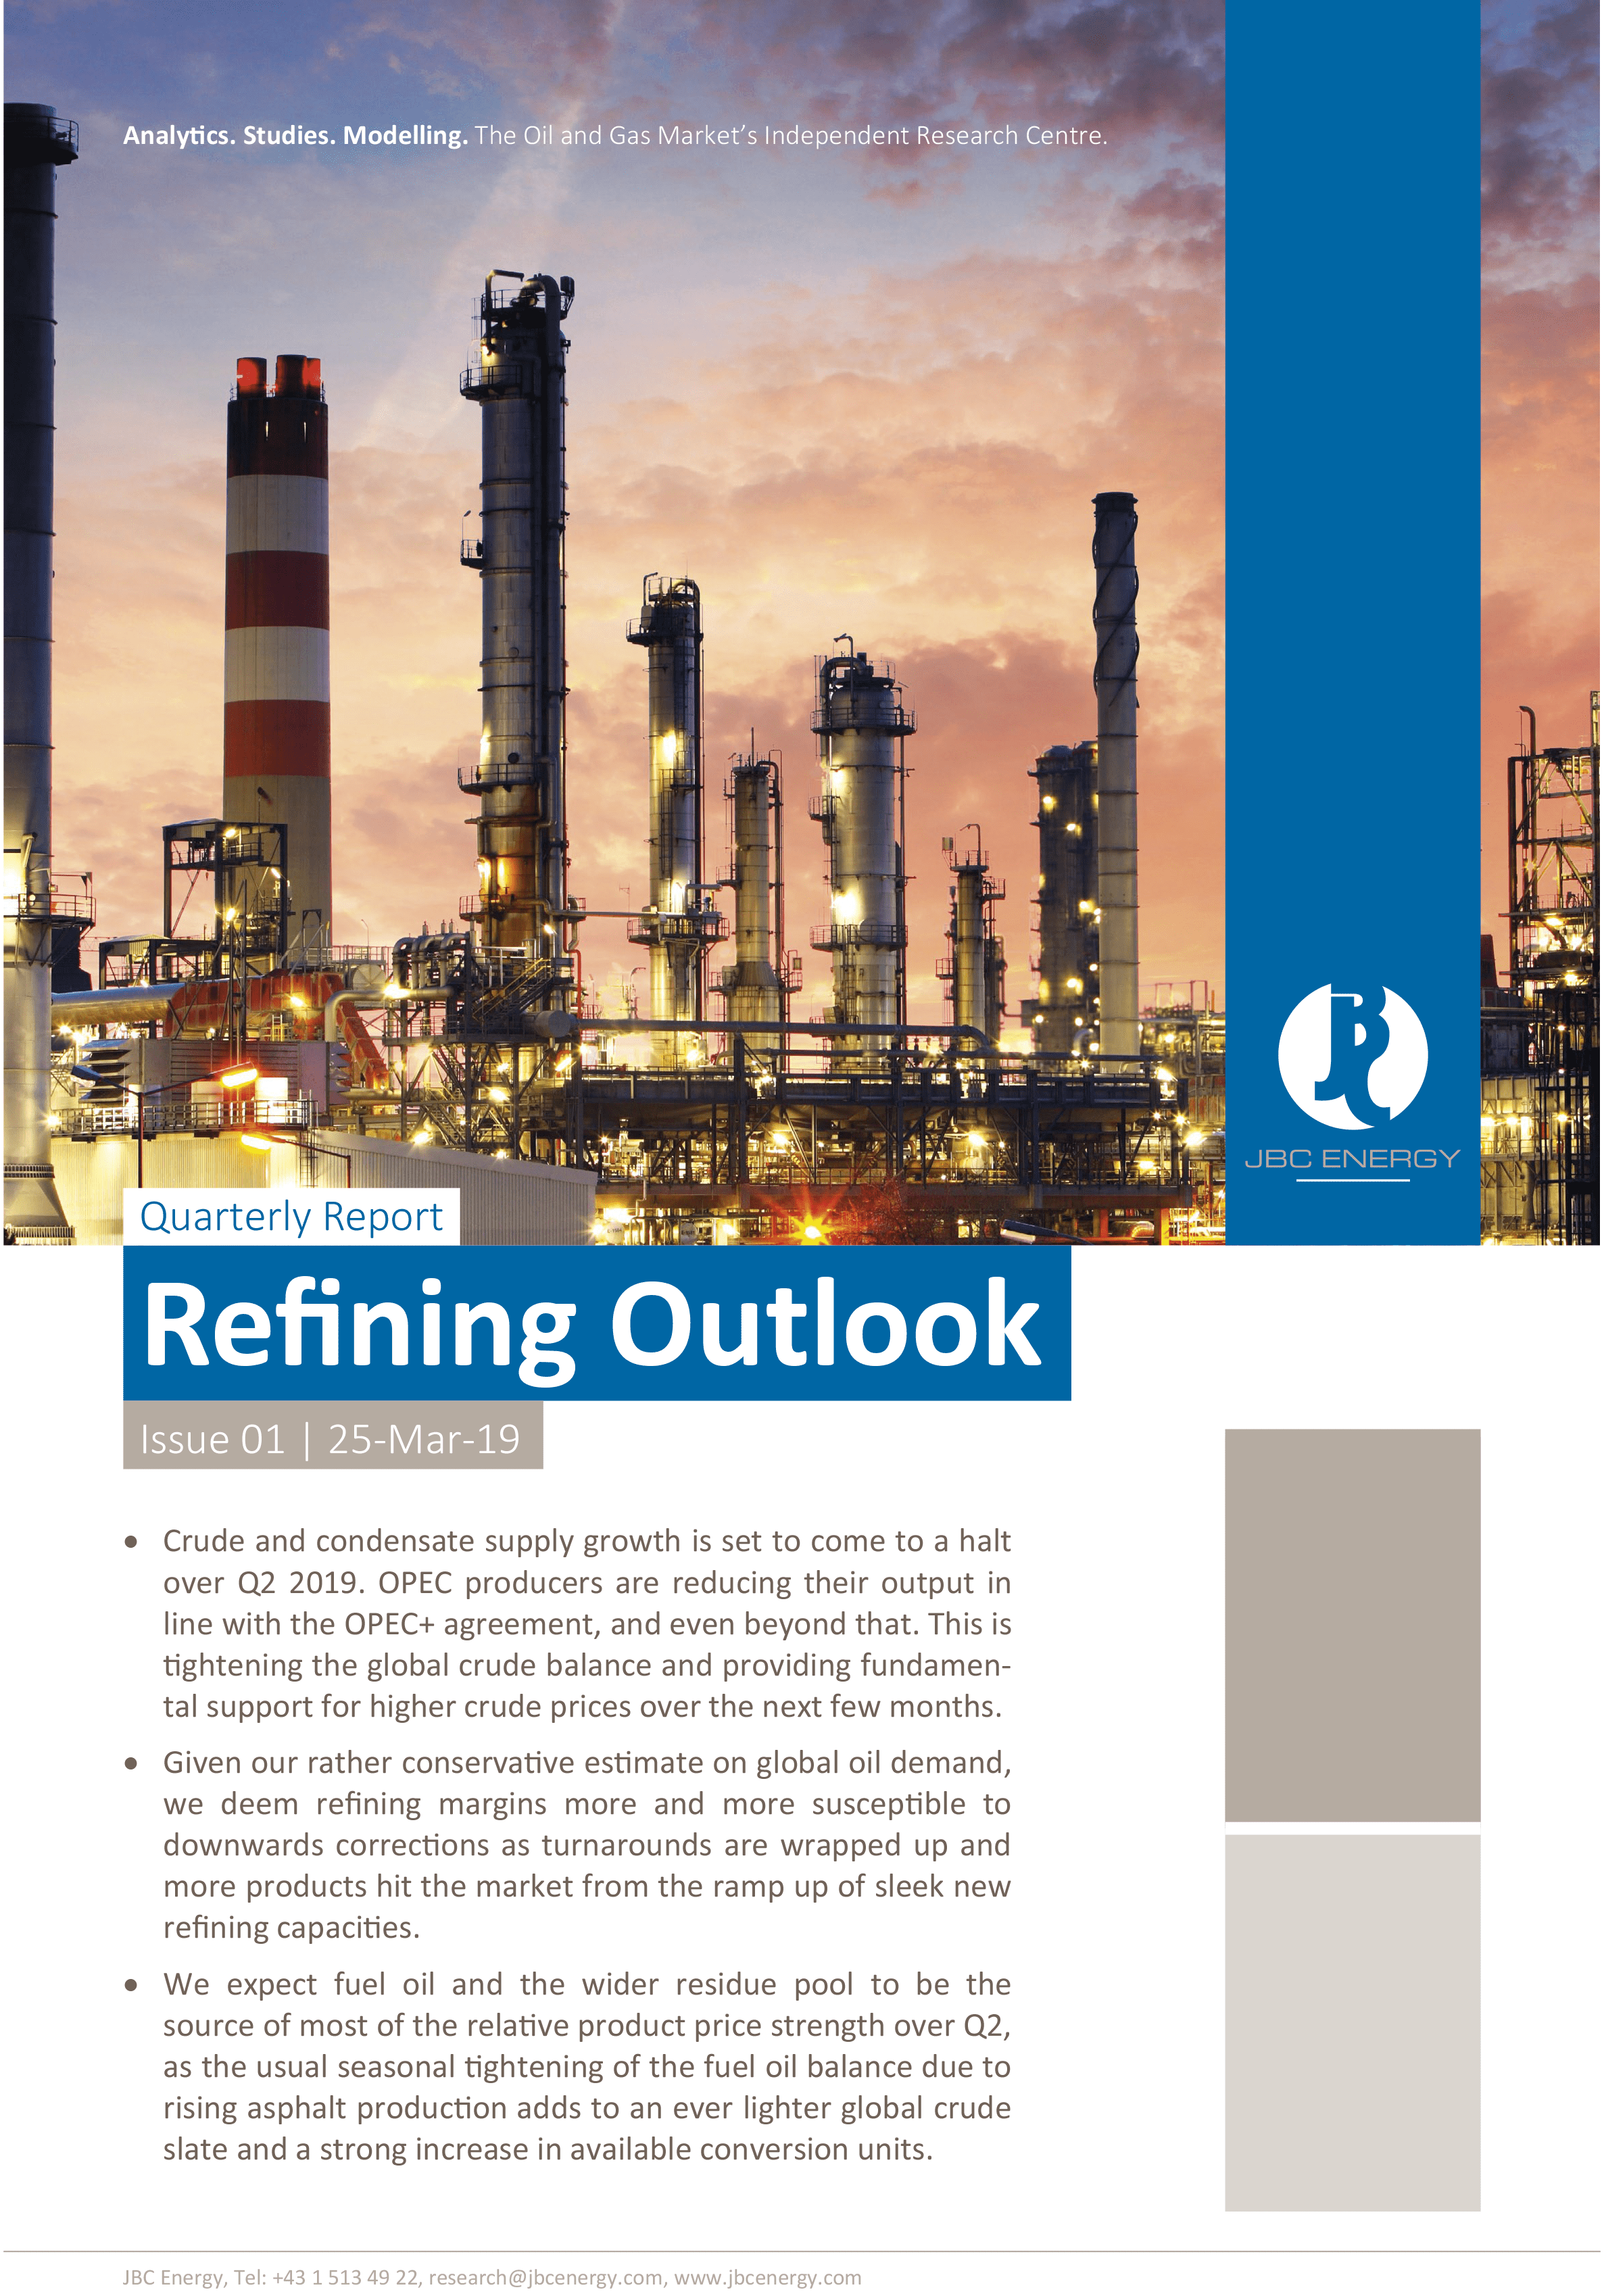 Quarterly refining outlook